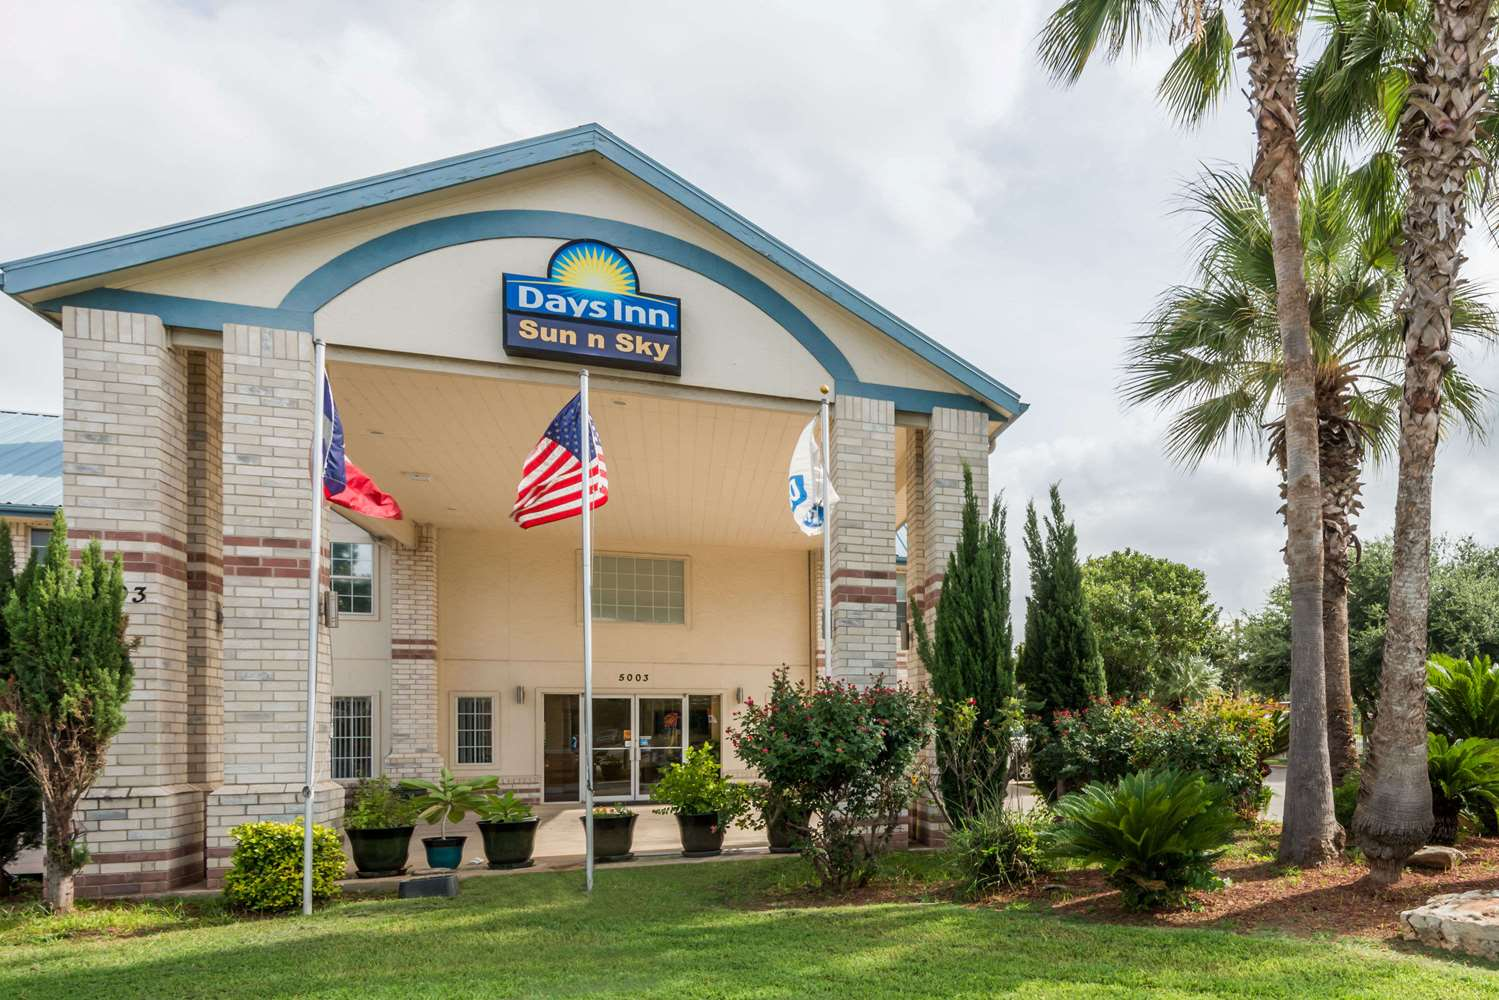 Days Inn Southeast San Antonio